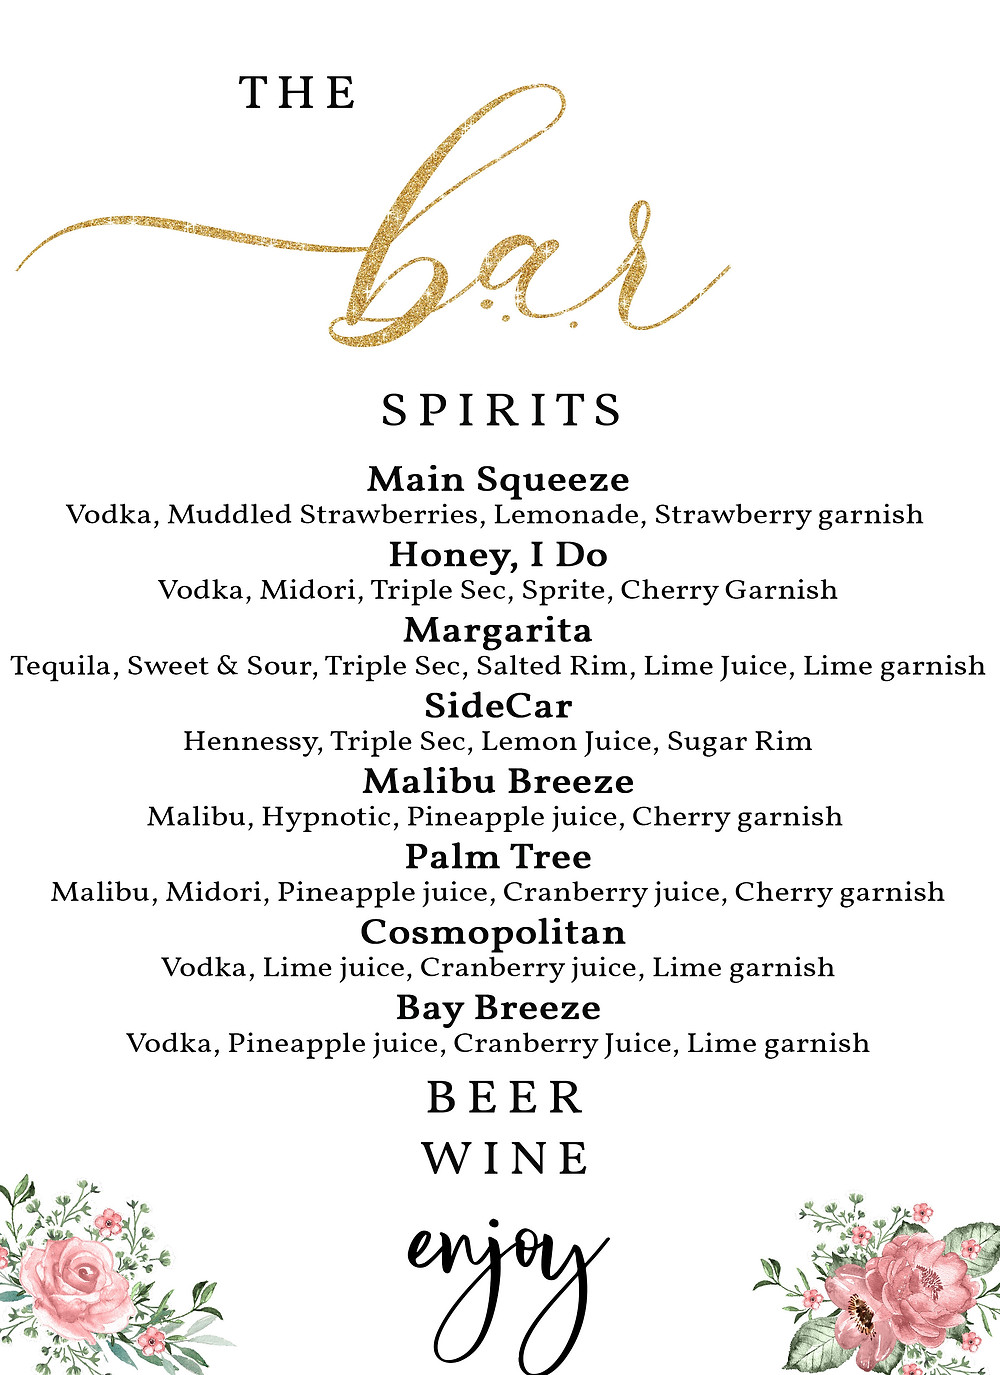 A lot of drinks on the menu for the bar